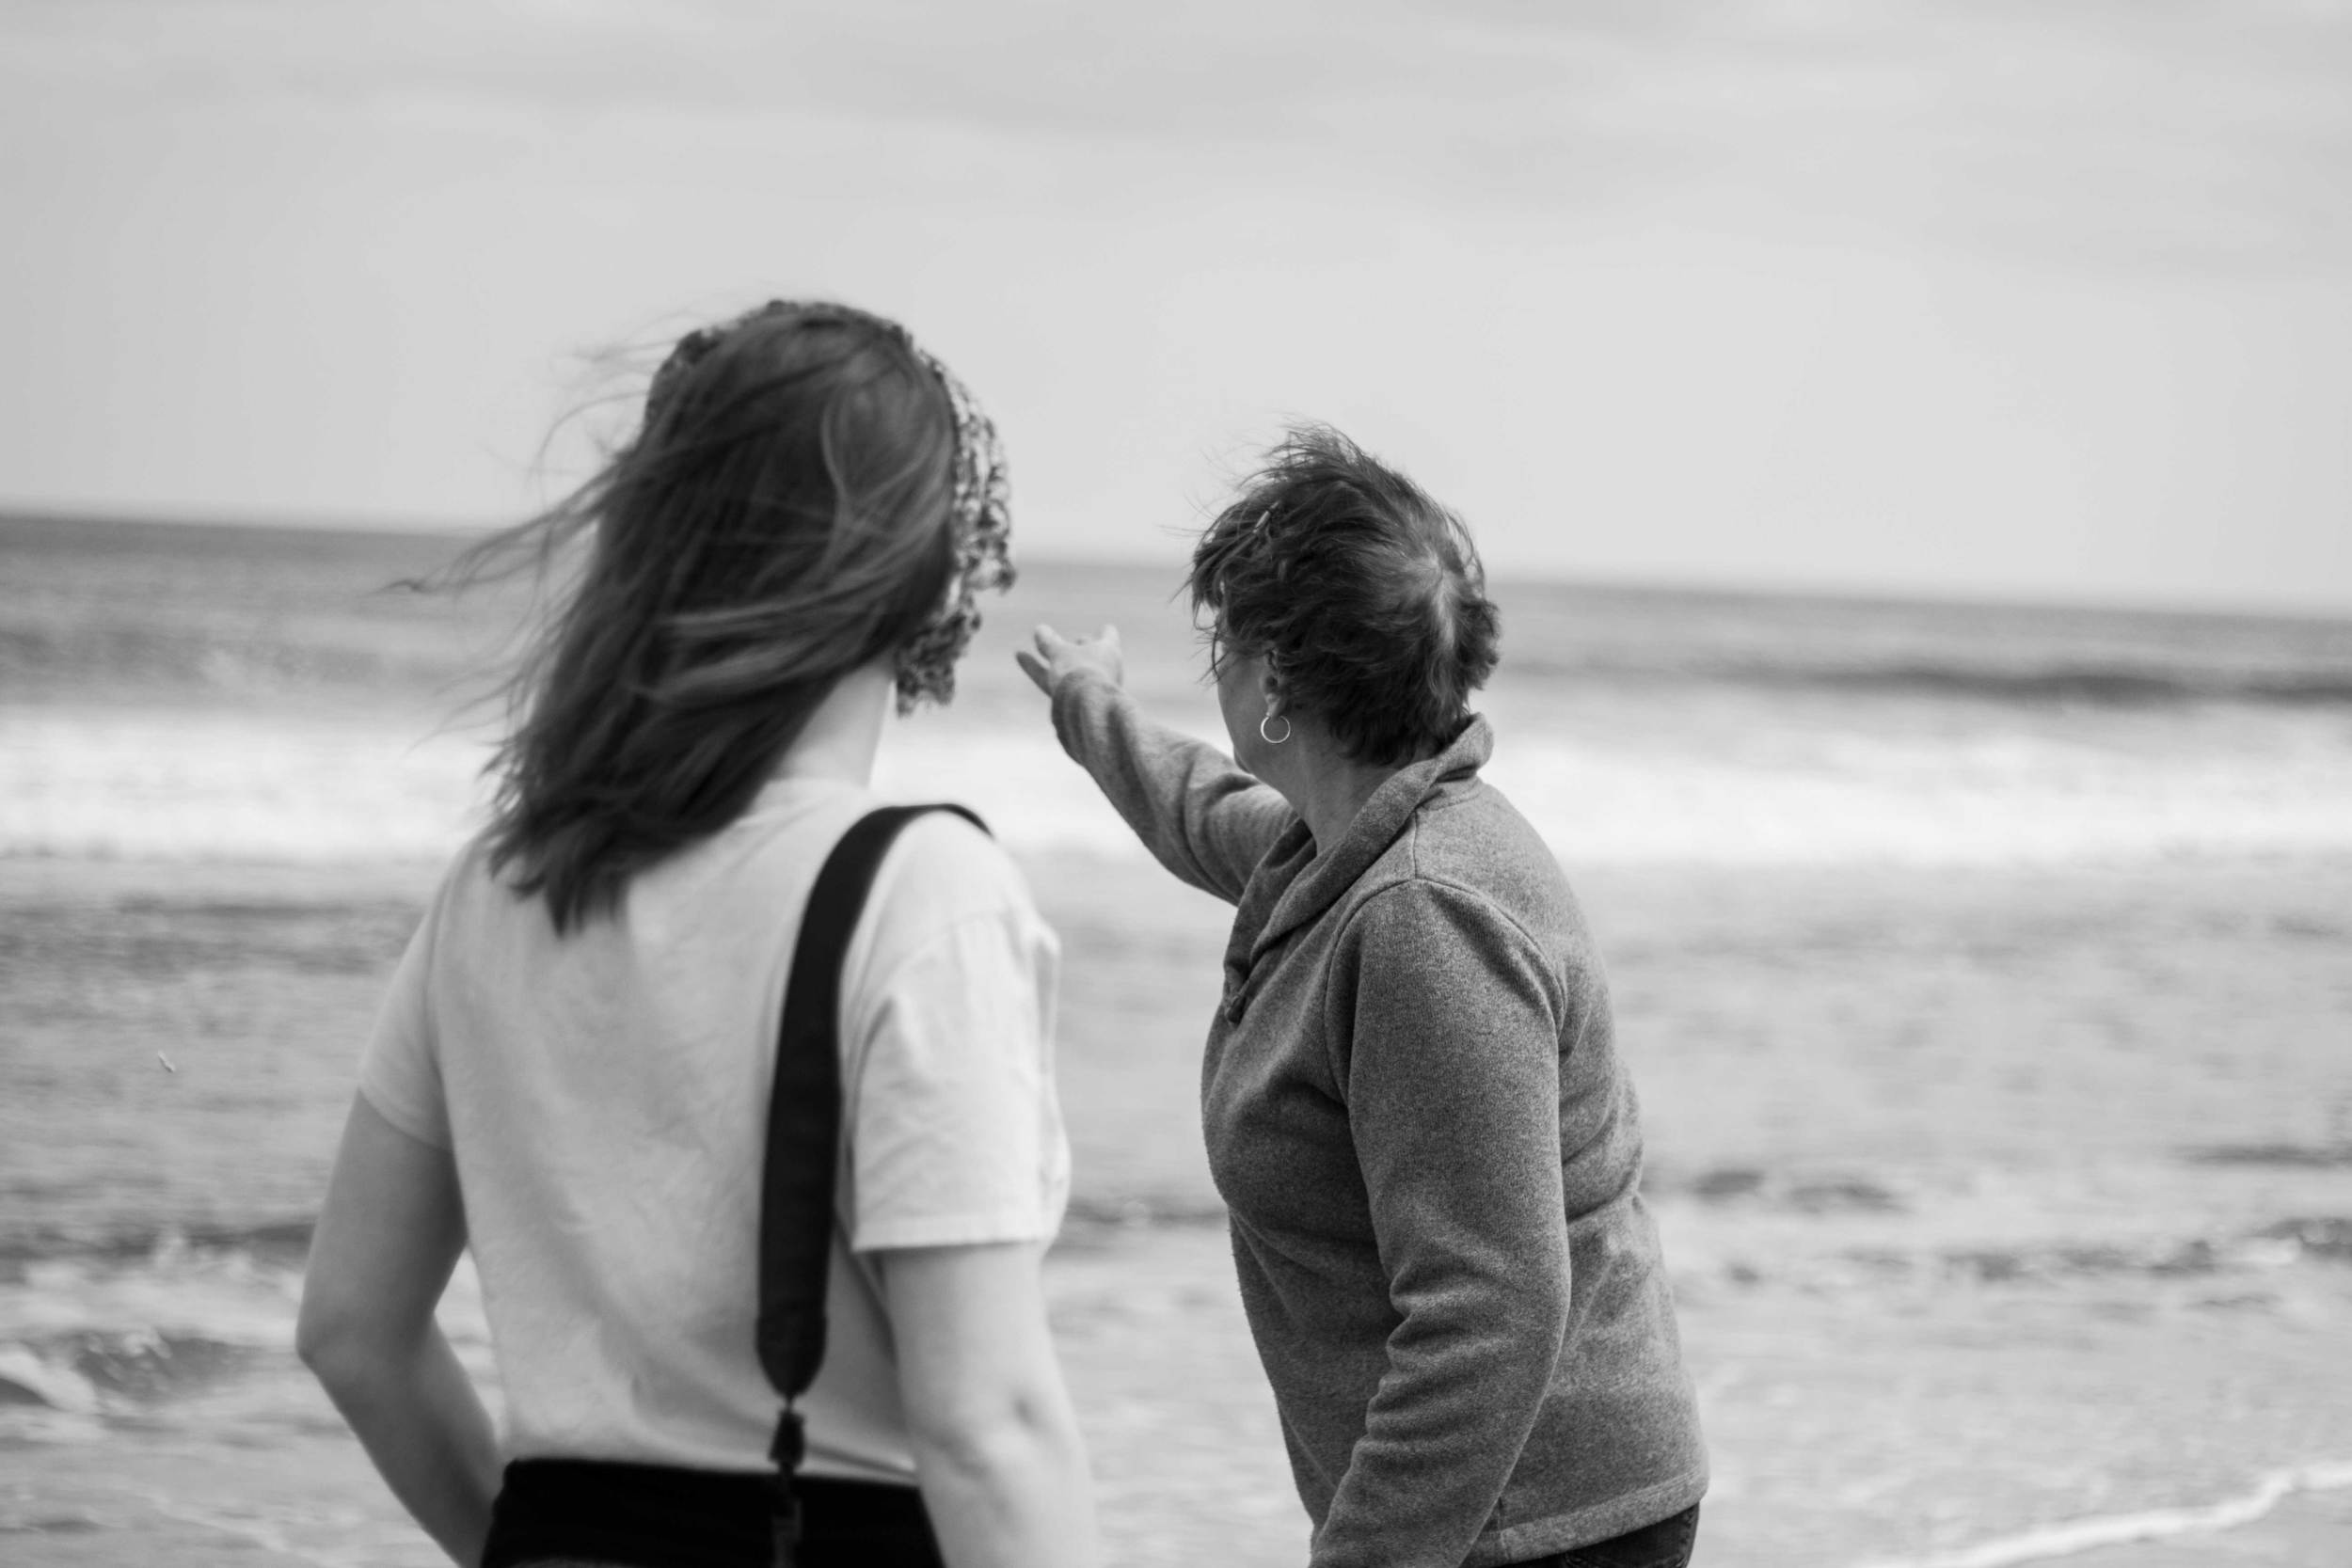 """This photo is from last summer, and is of a daughter and mother, throwing a seashell into the ocean to honor the mother's late brother; in essence, a family reunion."""